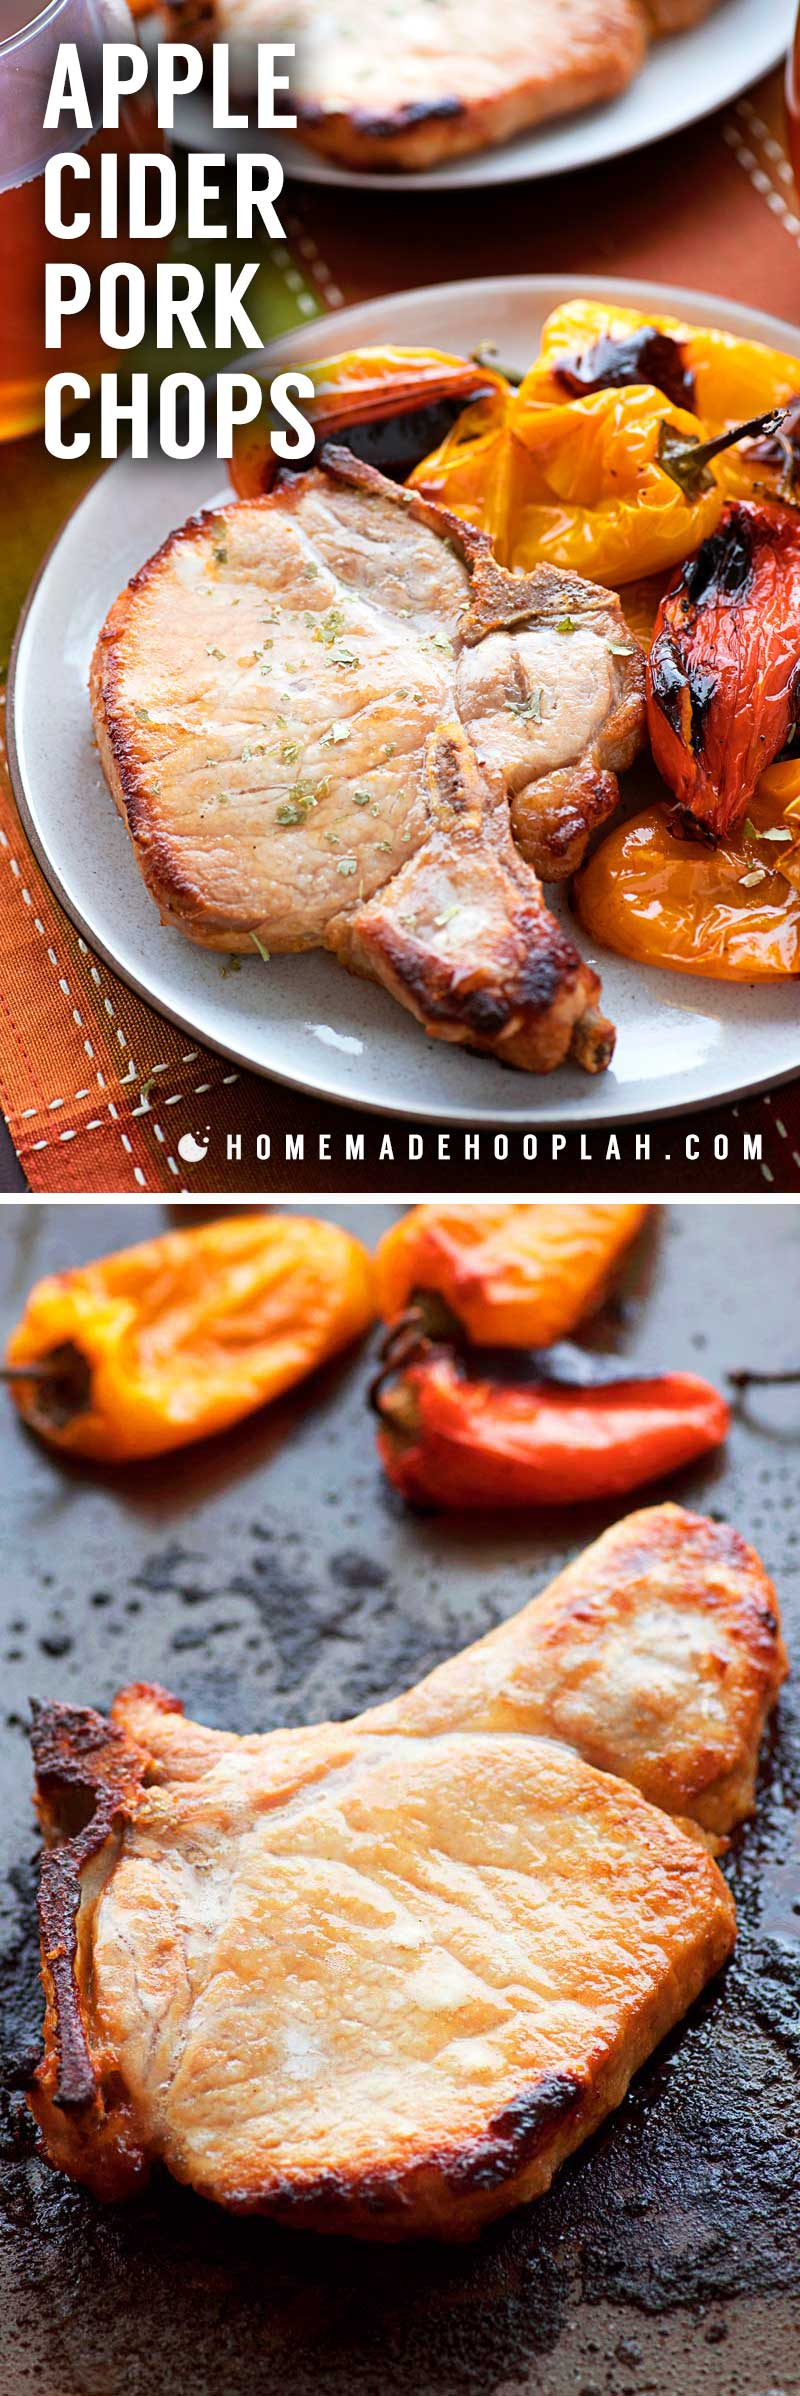 Apple Cider Pork Chops! These tender bone-in thick cut pork chops are soaked in an apple cider brine and then baked to tender perfection with miniature sweet peppers. #ad | HomemadeHooplah.com